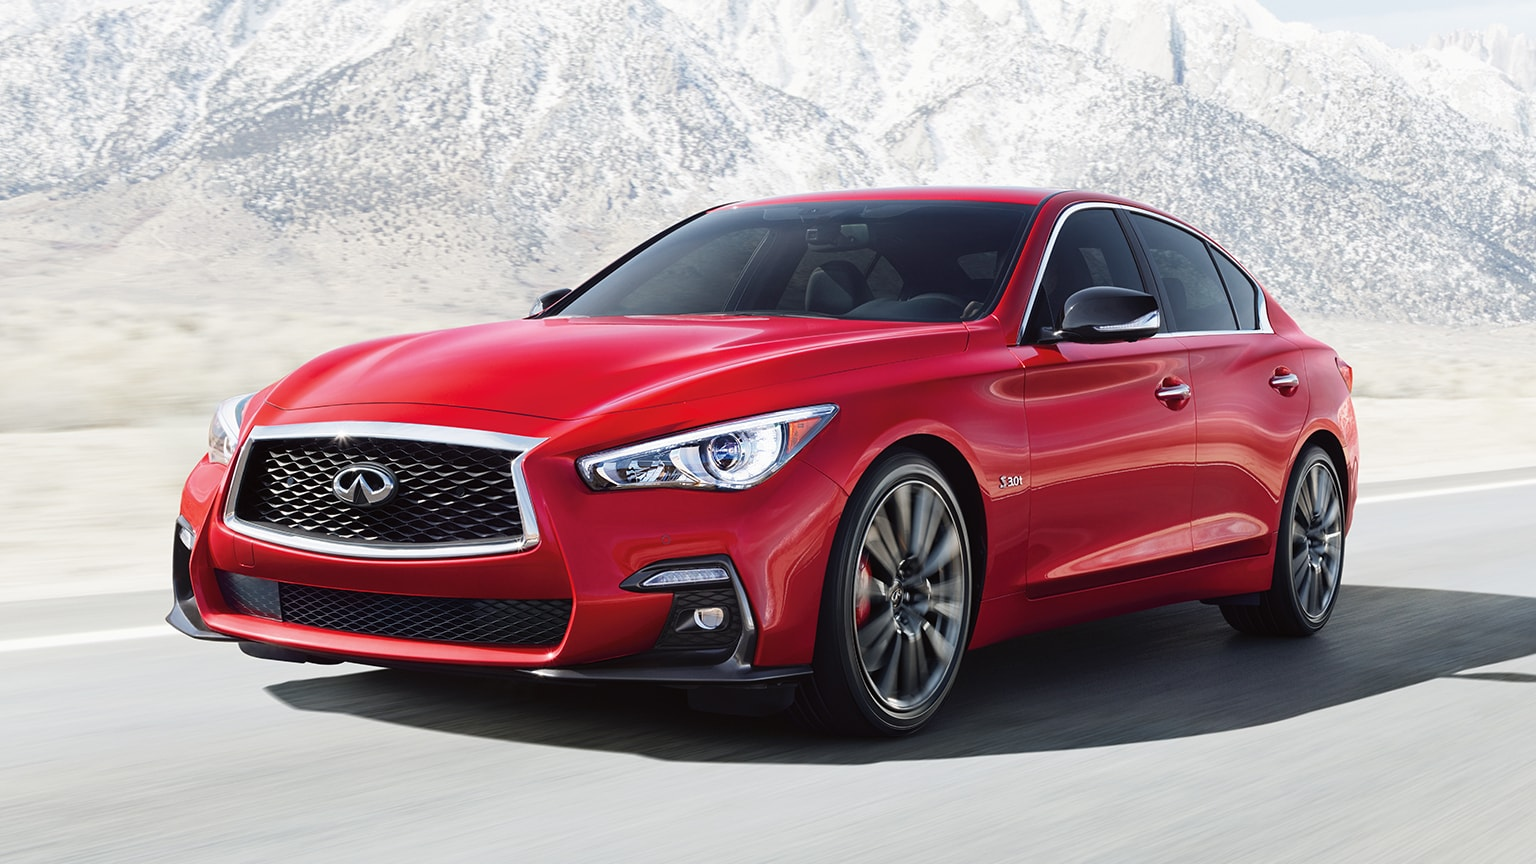 Pre-Owned INFINITI models for sale in Jackson, MS